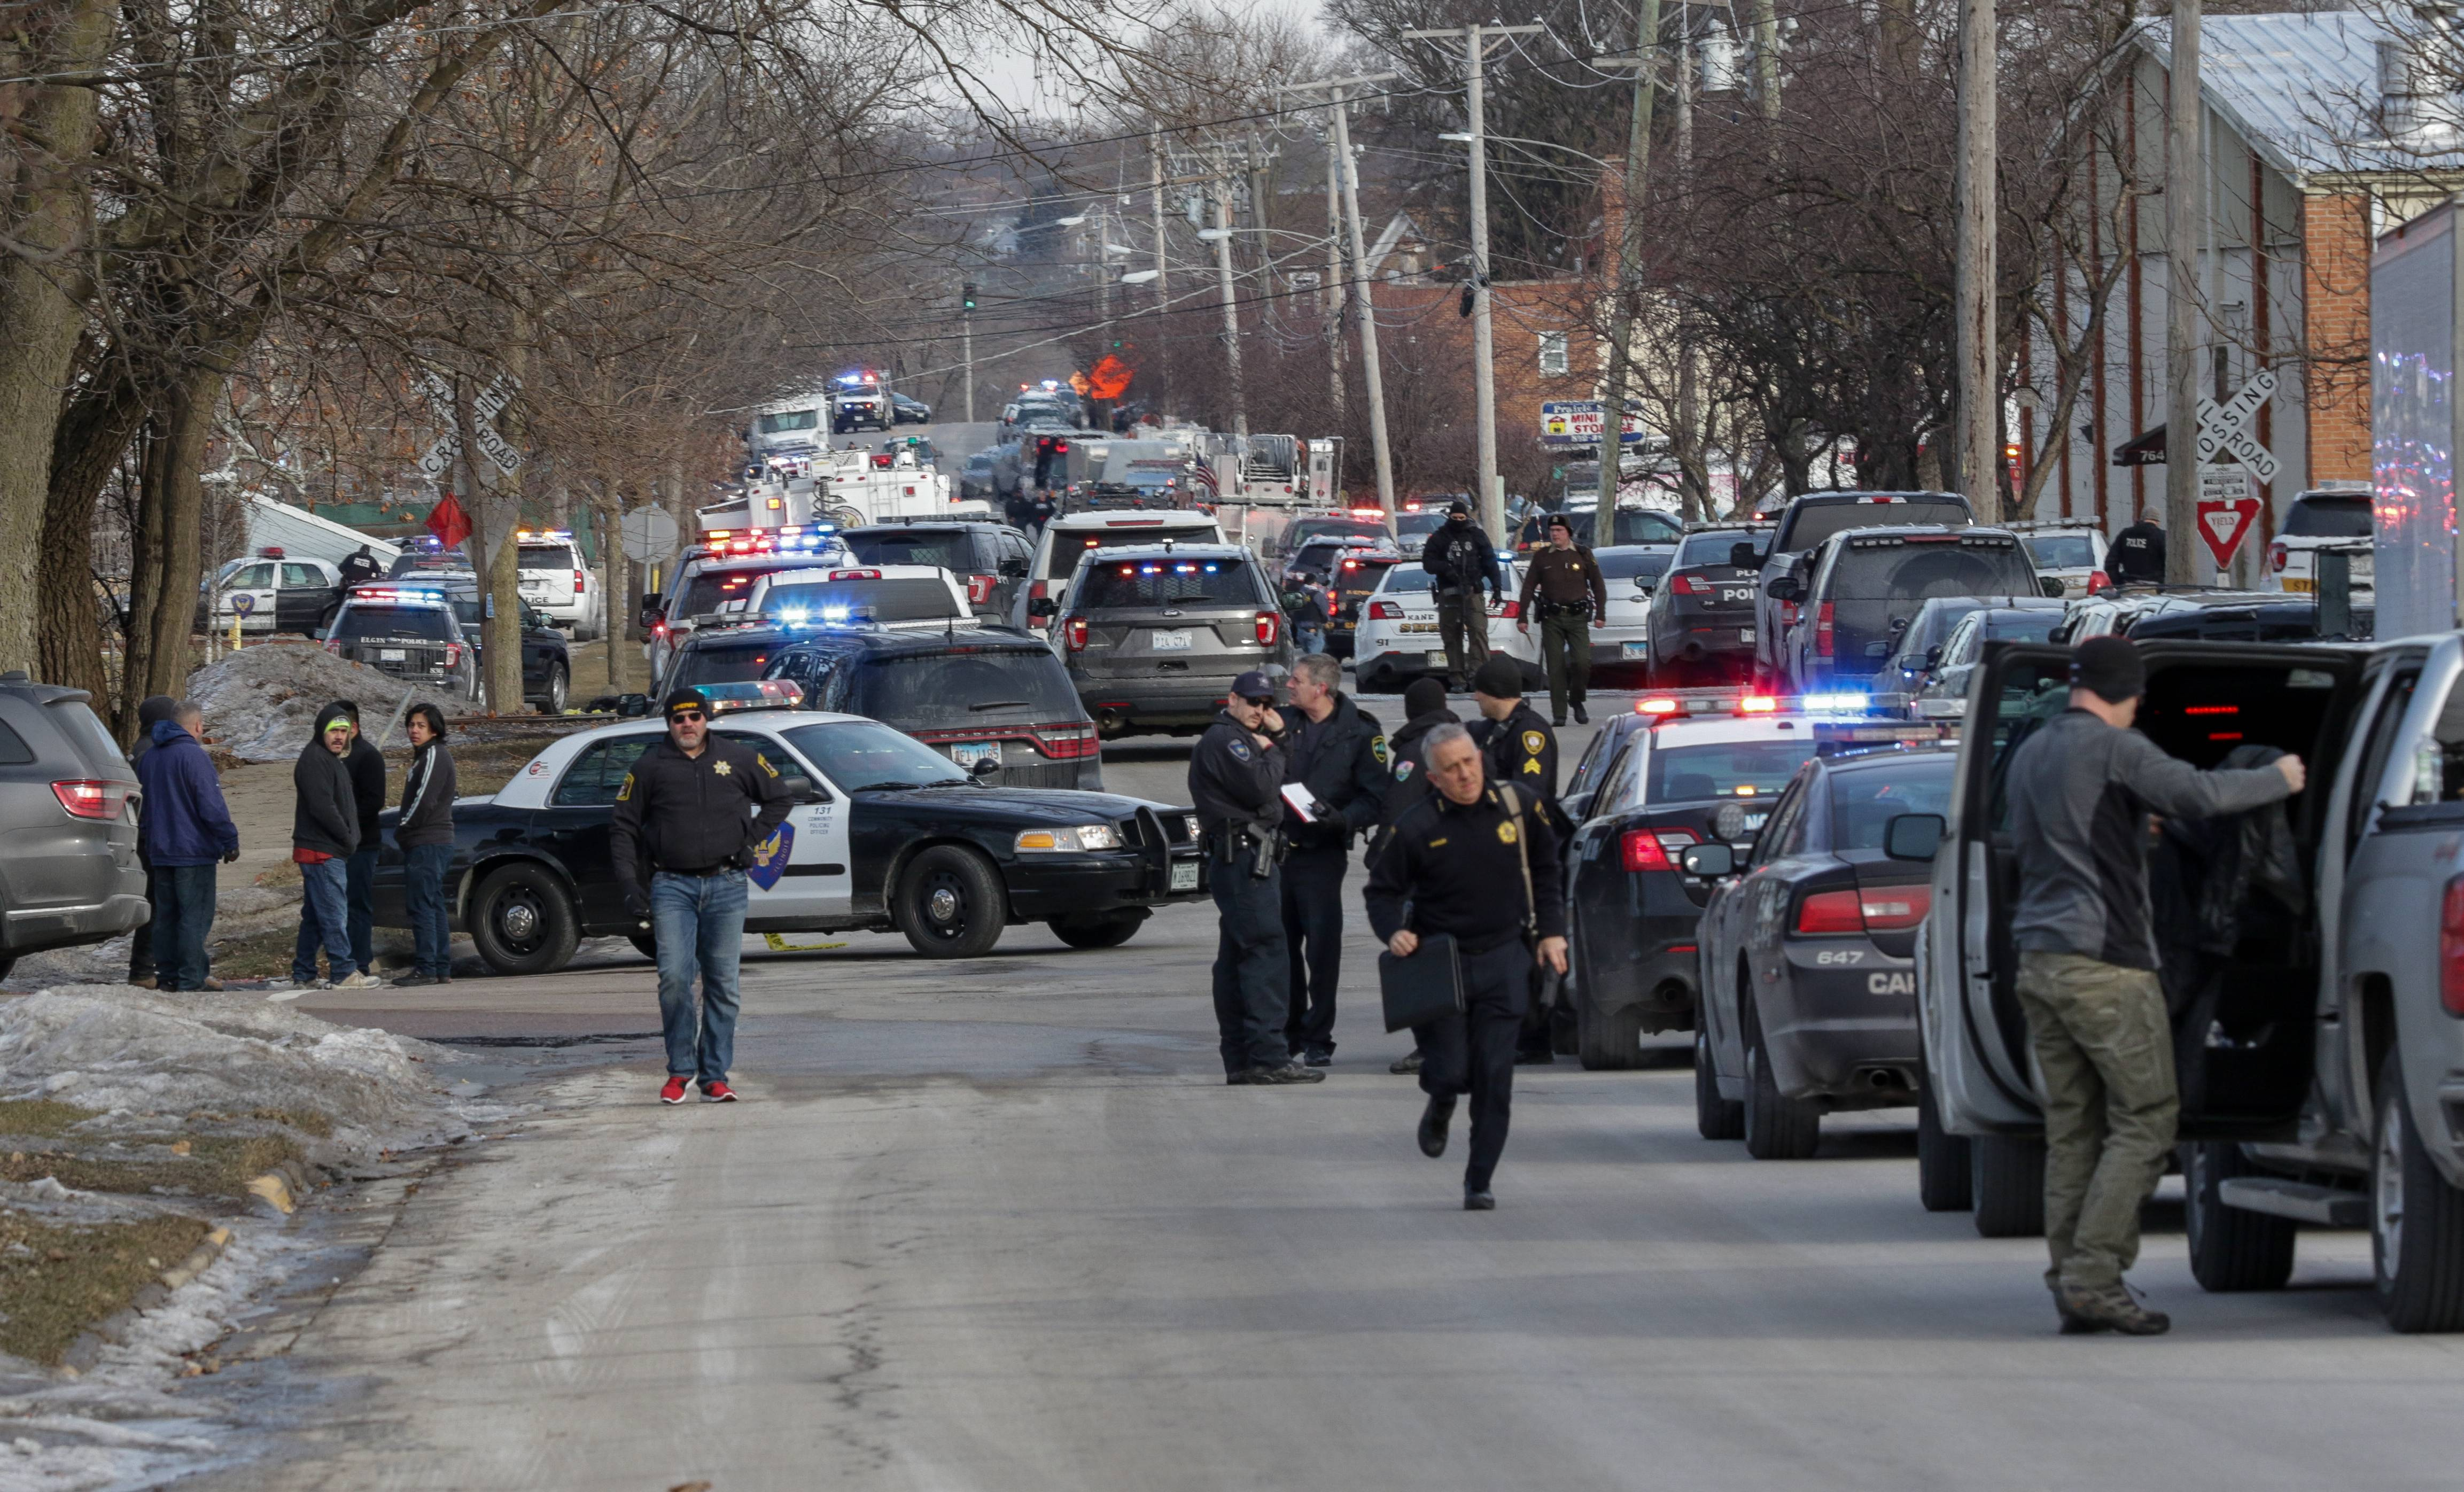 Five people were killed and five police officers and multiple civilians were wounded in an Aurora shooting Friday in an industrial area near Prairie and Highland avenues.